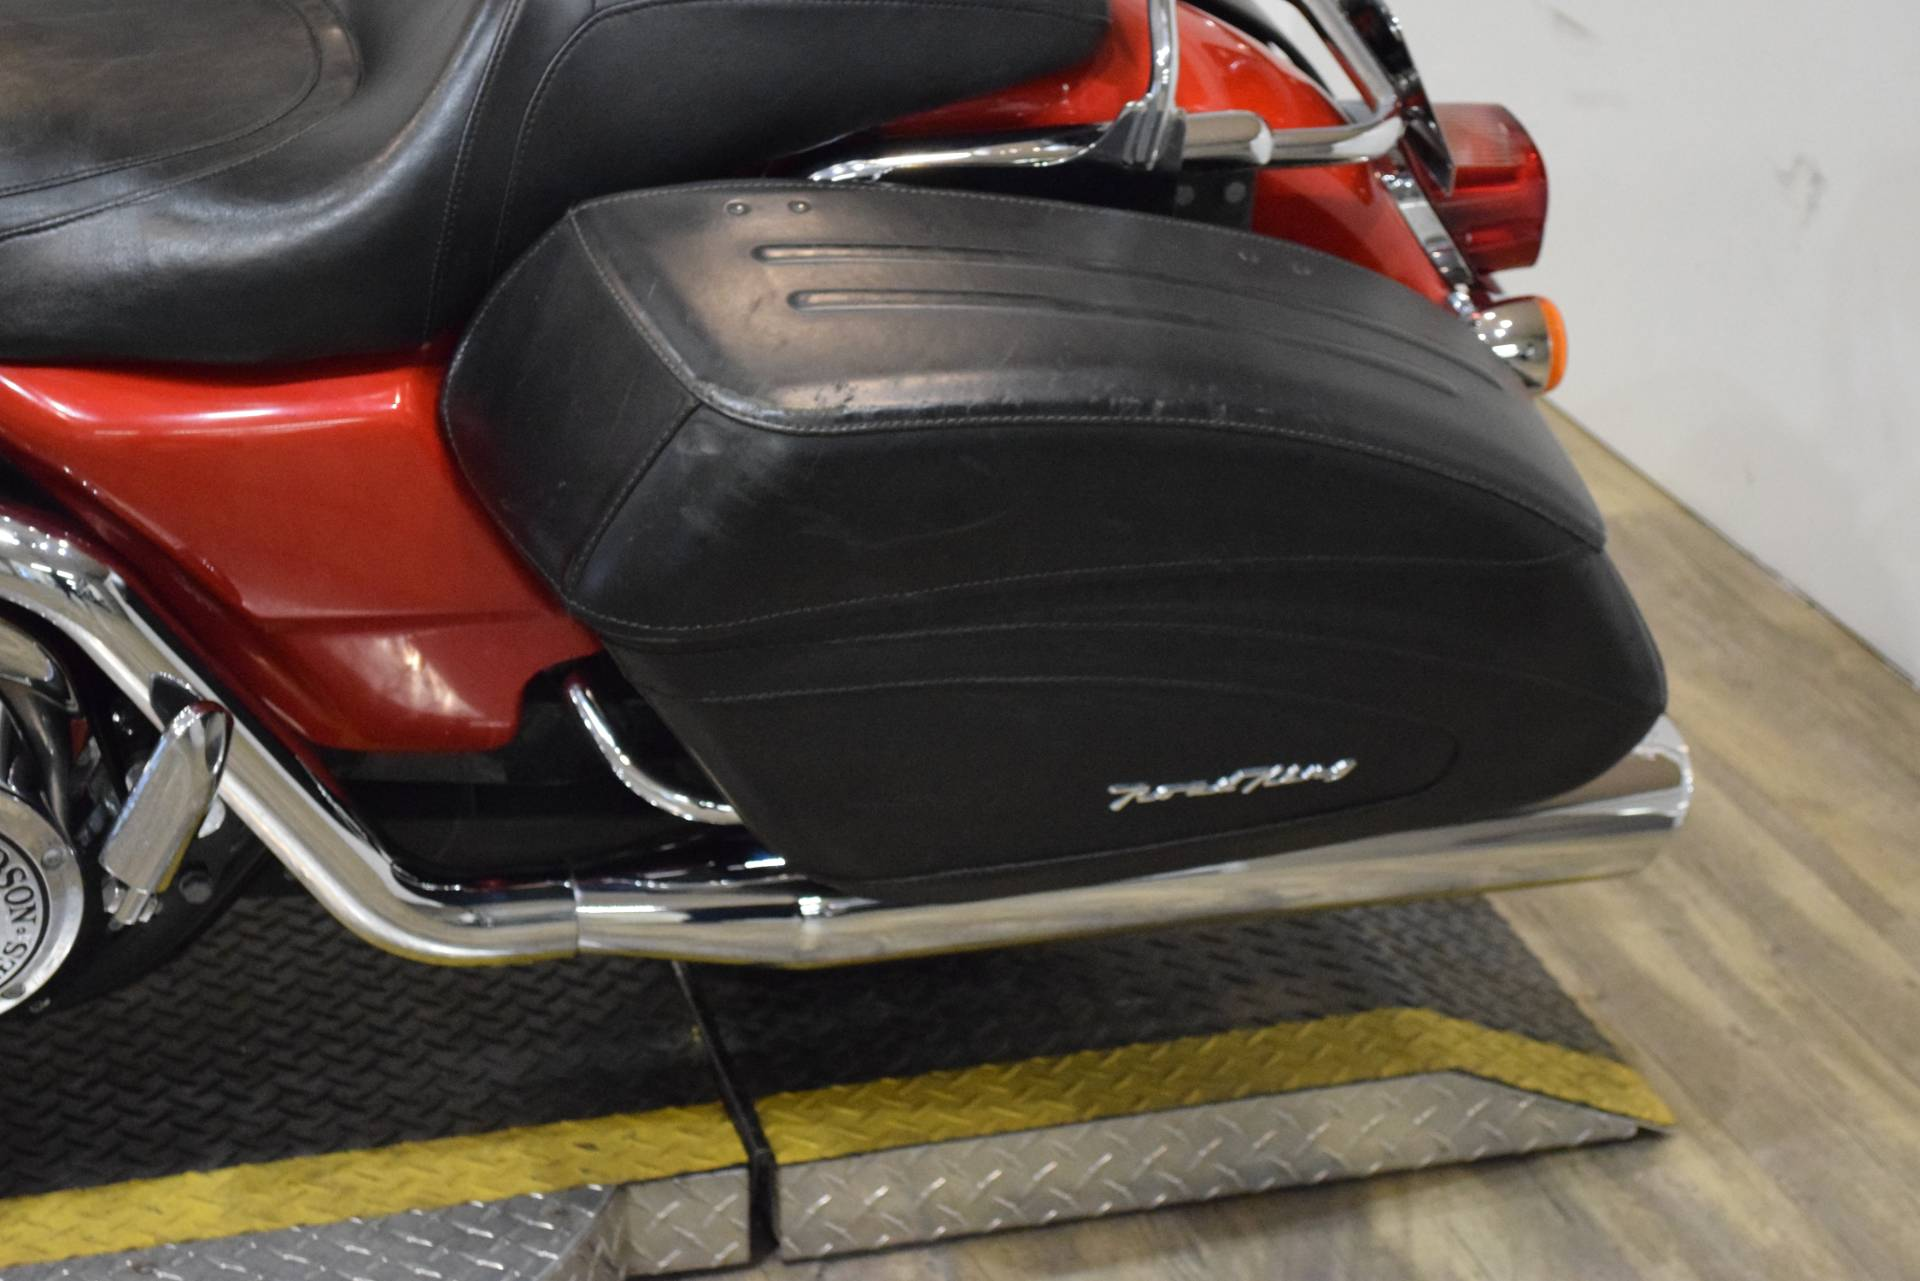 2004 Harley-Davidson FLHRS/FLHRSI Road King® Custom in Wauconda, Illinois - Photo 16